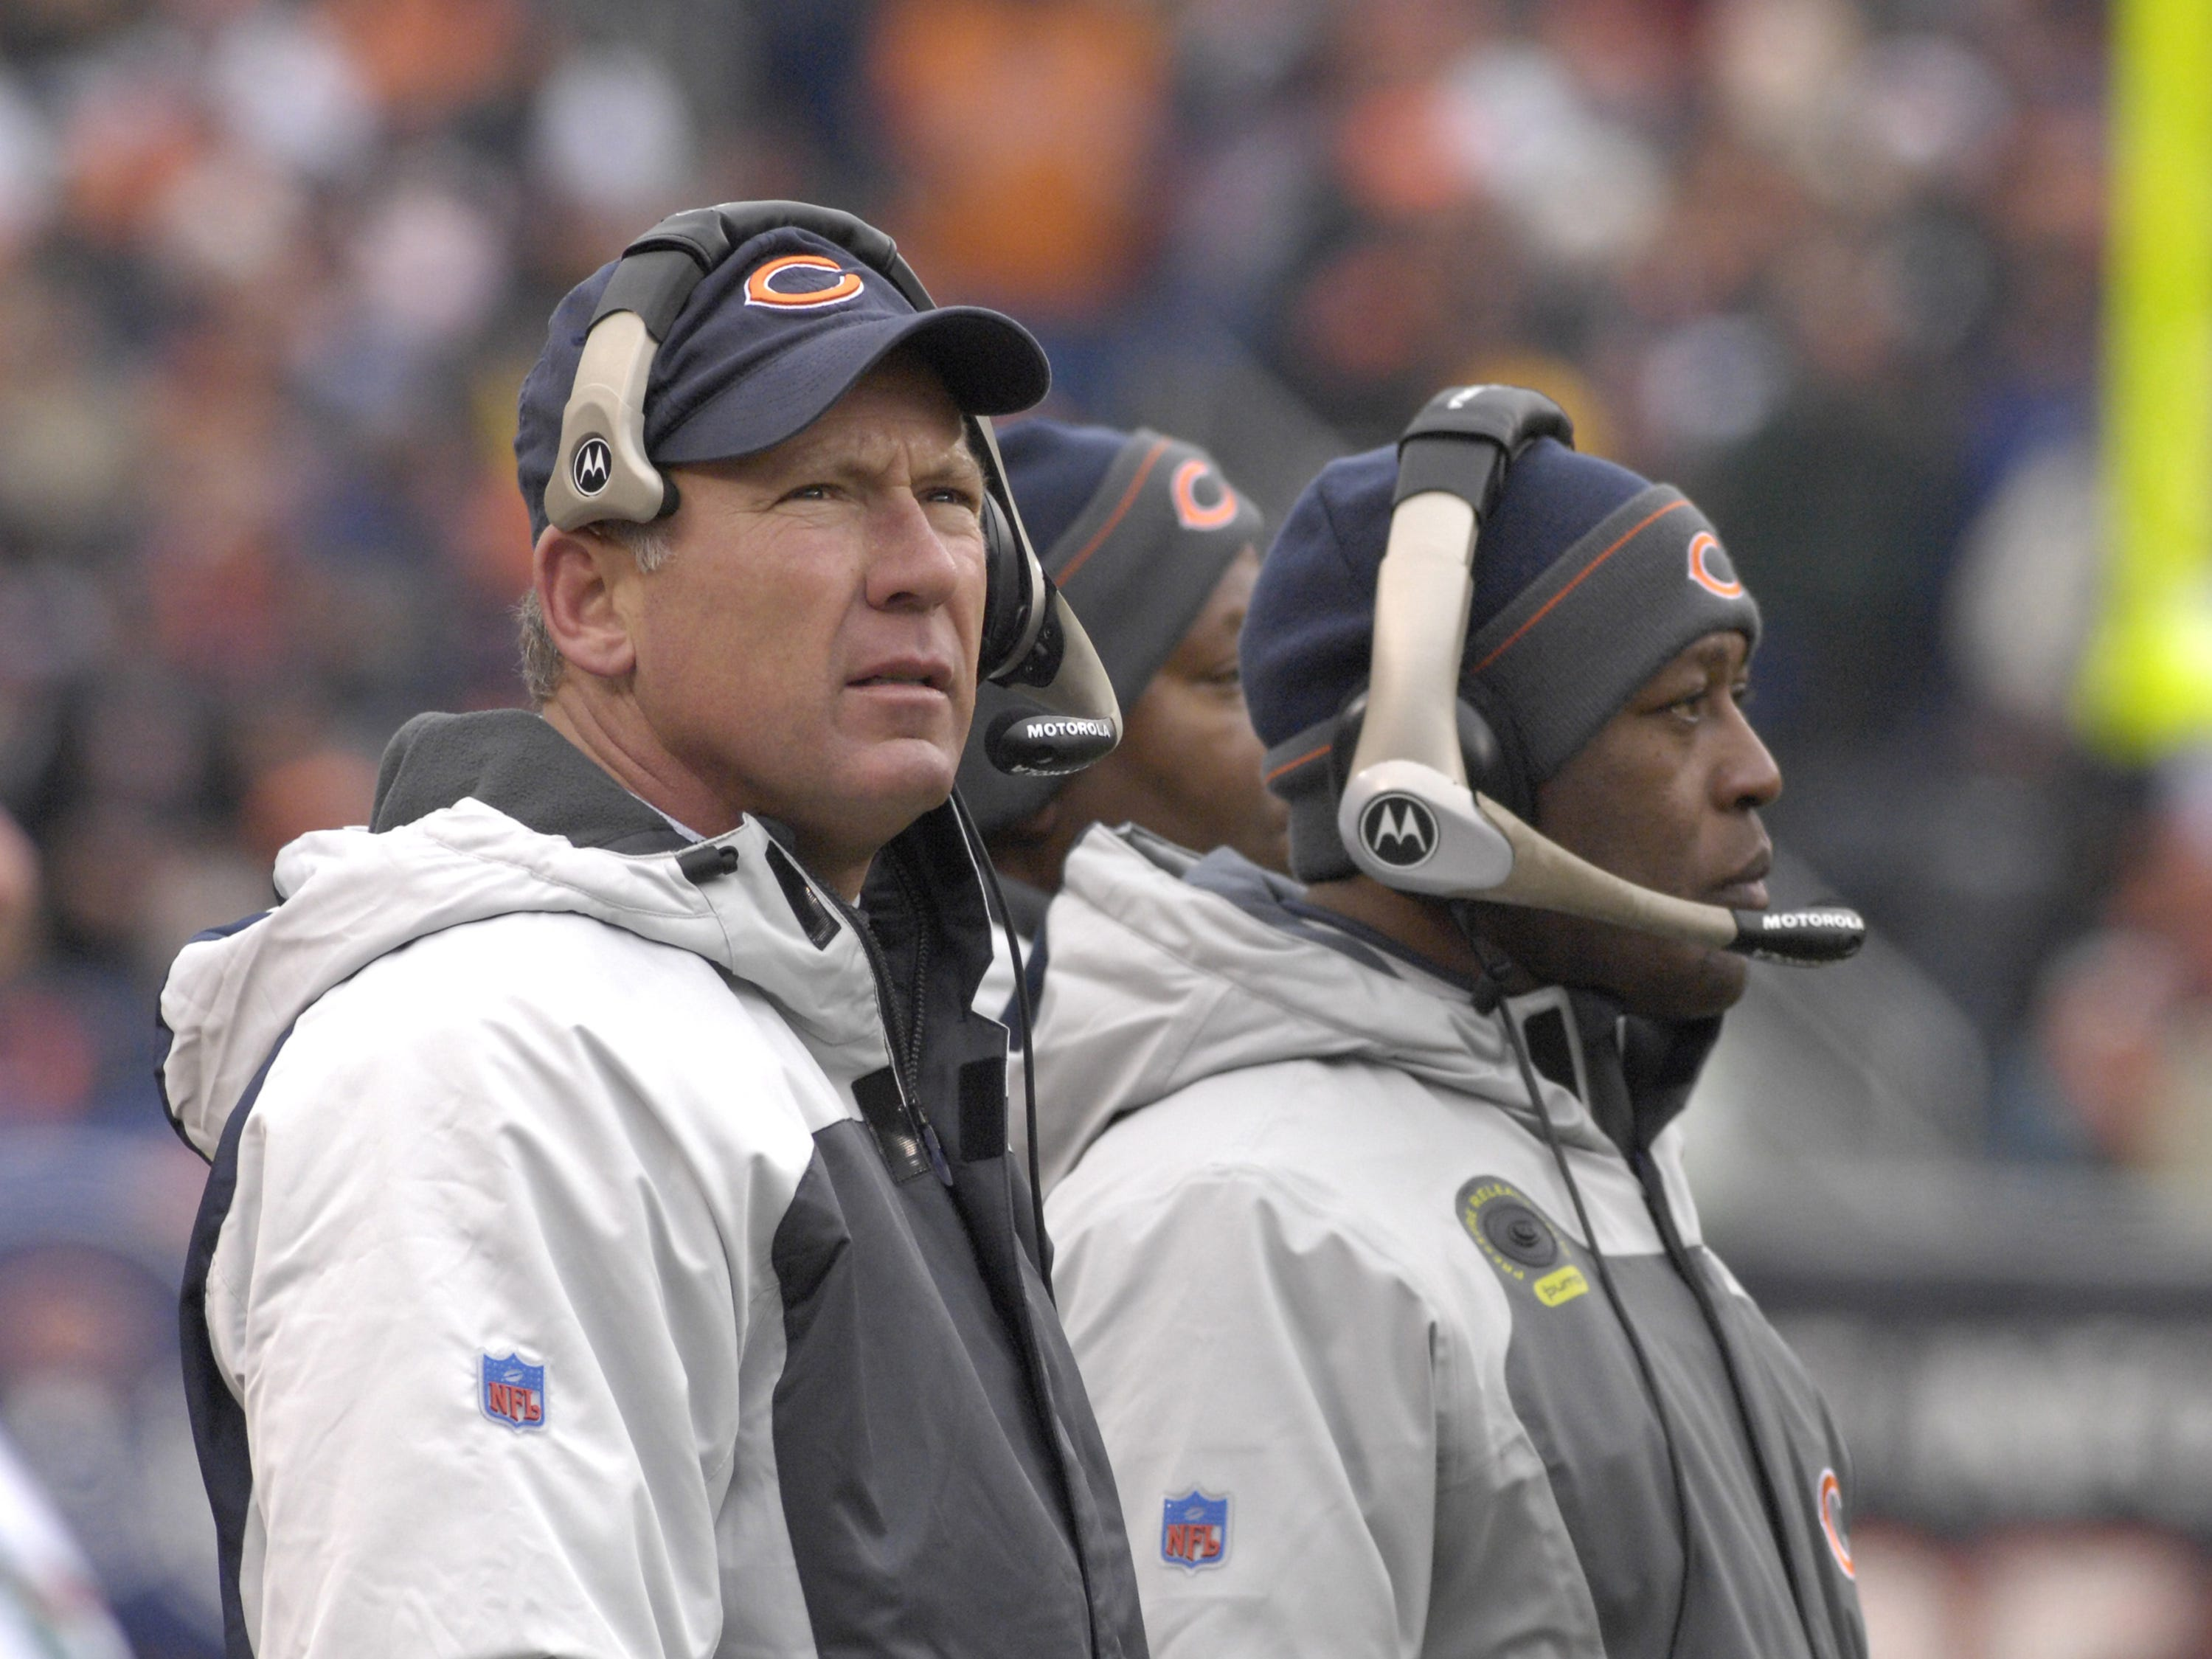 Wade Wilson, former Vikings quarterback and Cowboys position coach. Feb. 1. He was 60.